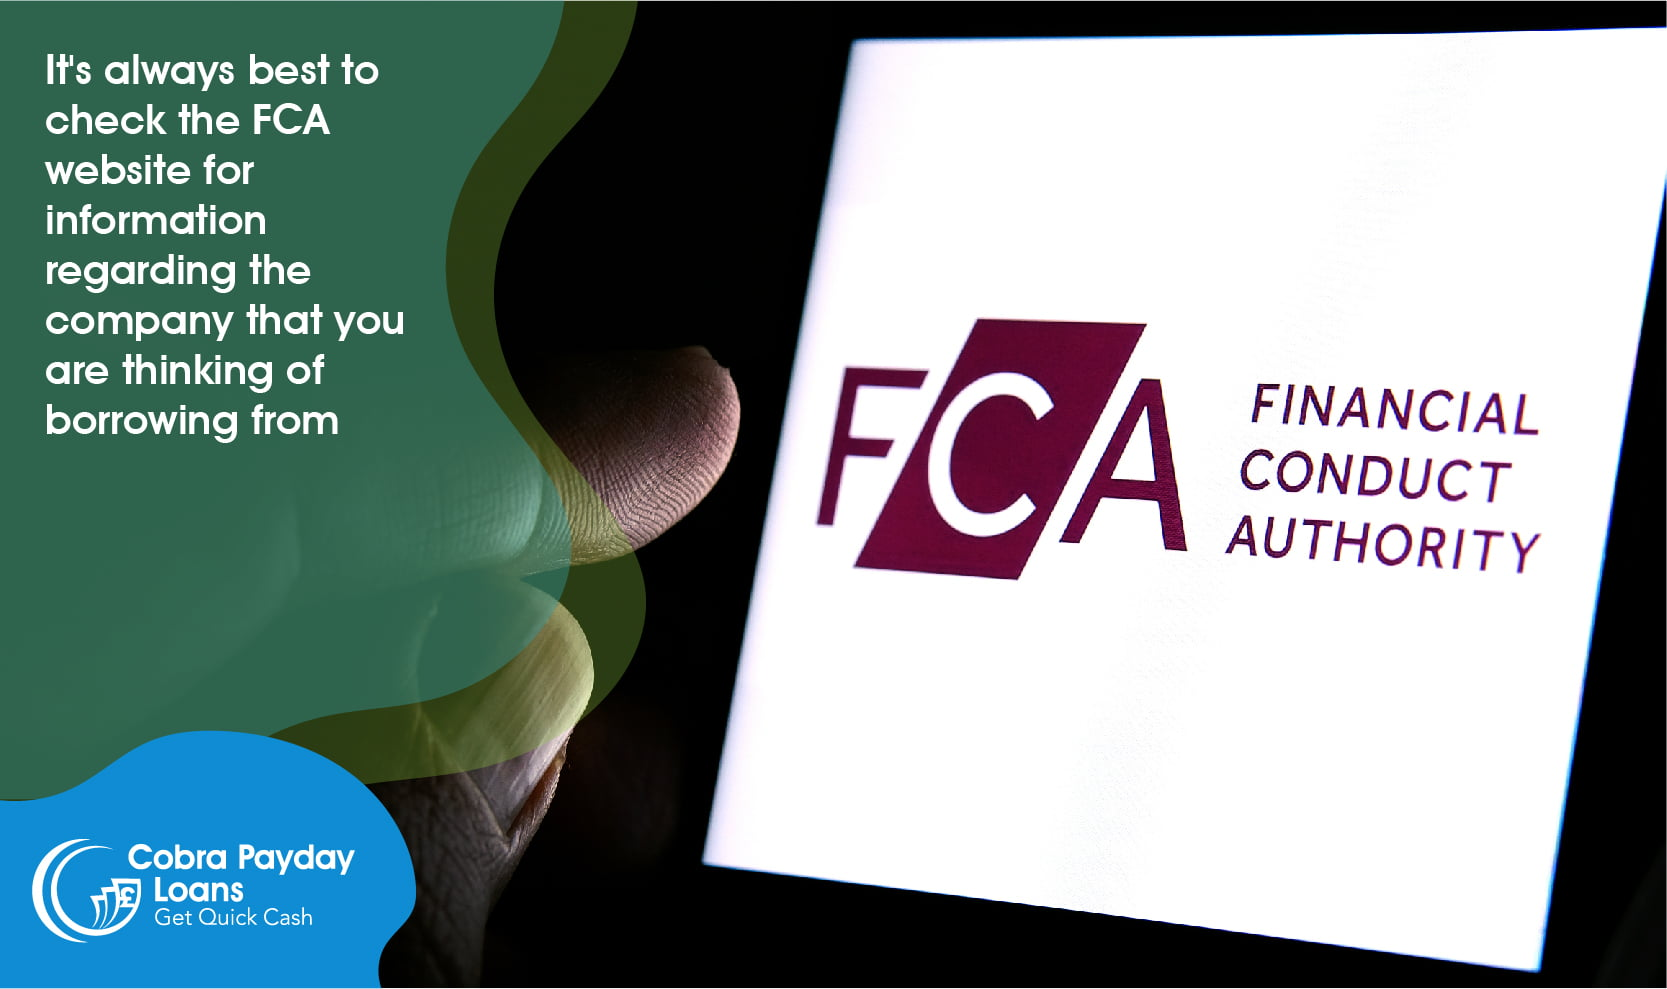 check the FCA website for information regarding the company